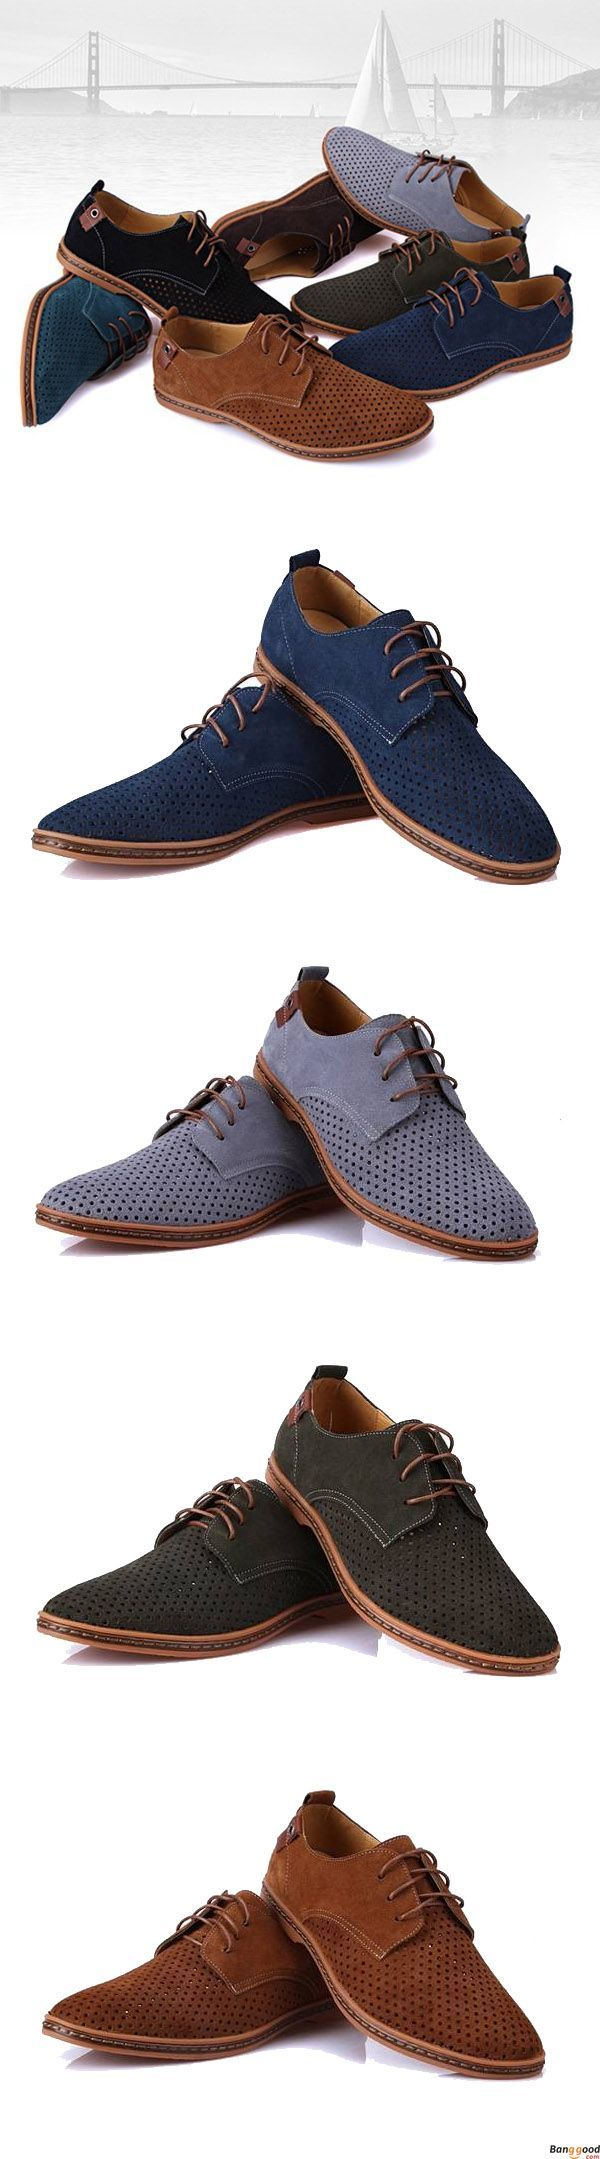 US$33.59+ Free Shipping. 7colors available. Men oxford shoes, casual comfortable shoes, oxford shoes, boots, Fashion and chic, casual shoes, men's flats, boots oxford shoes, hand stitching boots men's style, chic style, fashion style. Shop at banggood wit http://www.moderndecor8.com/